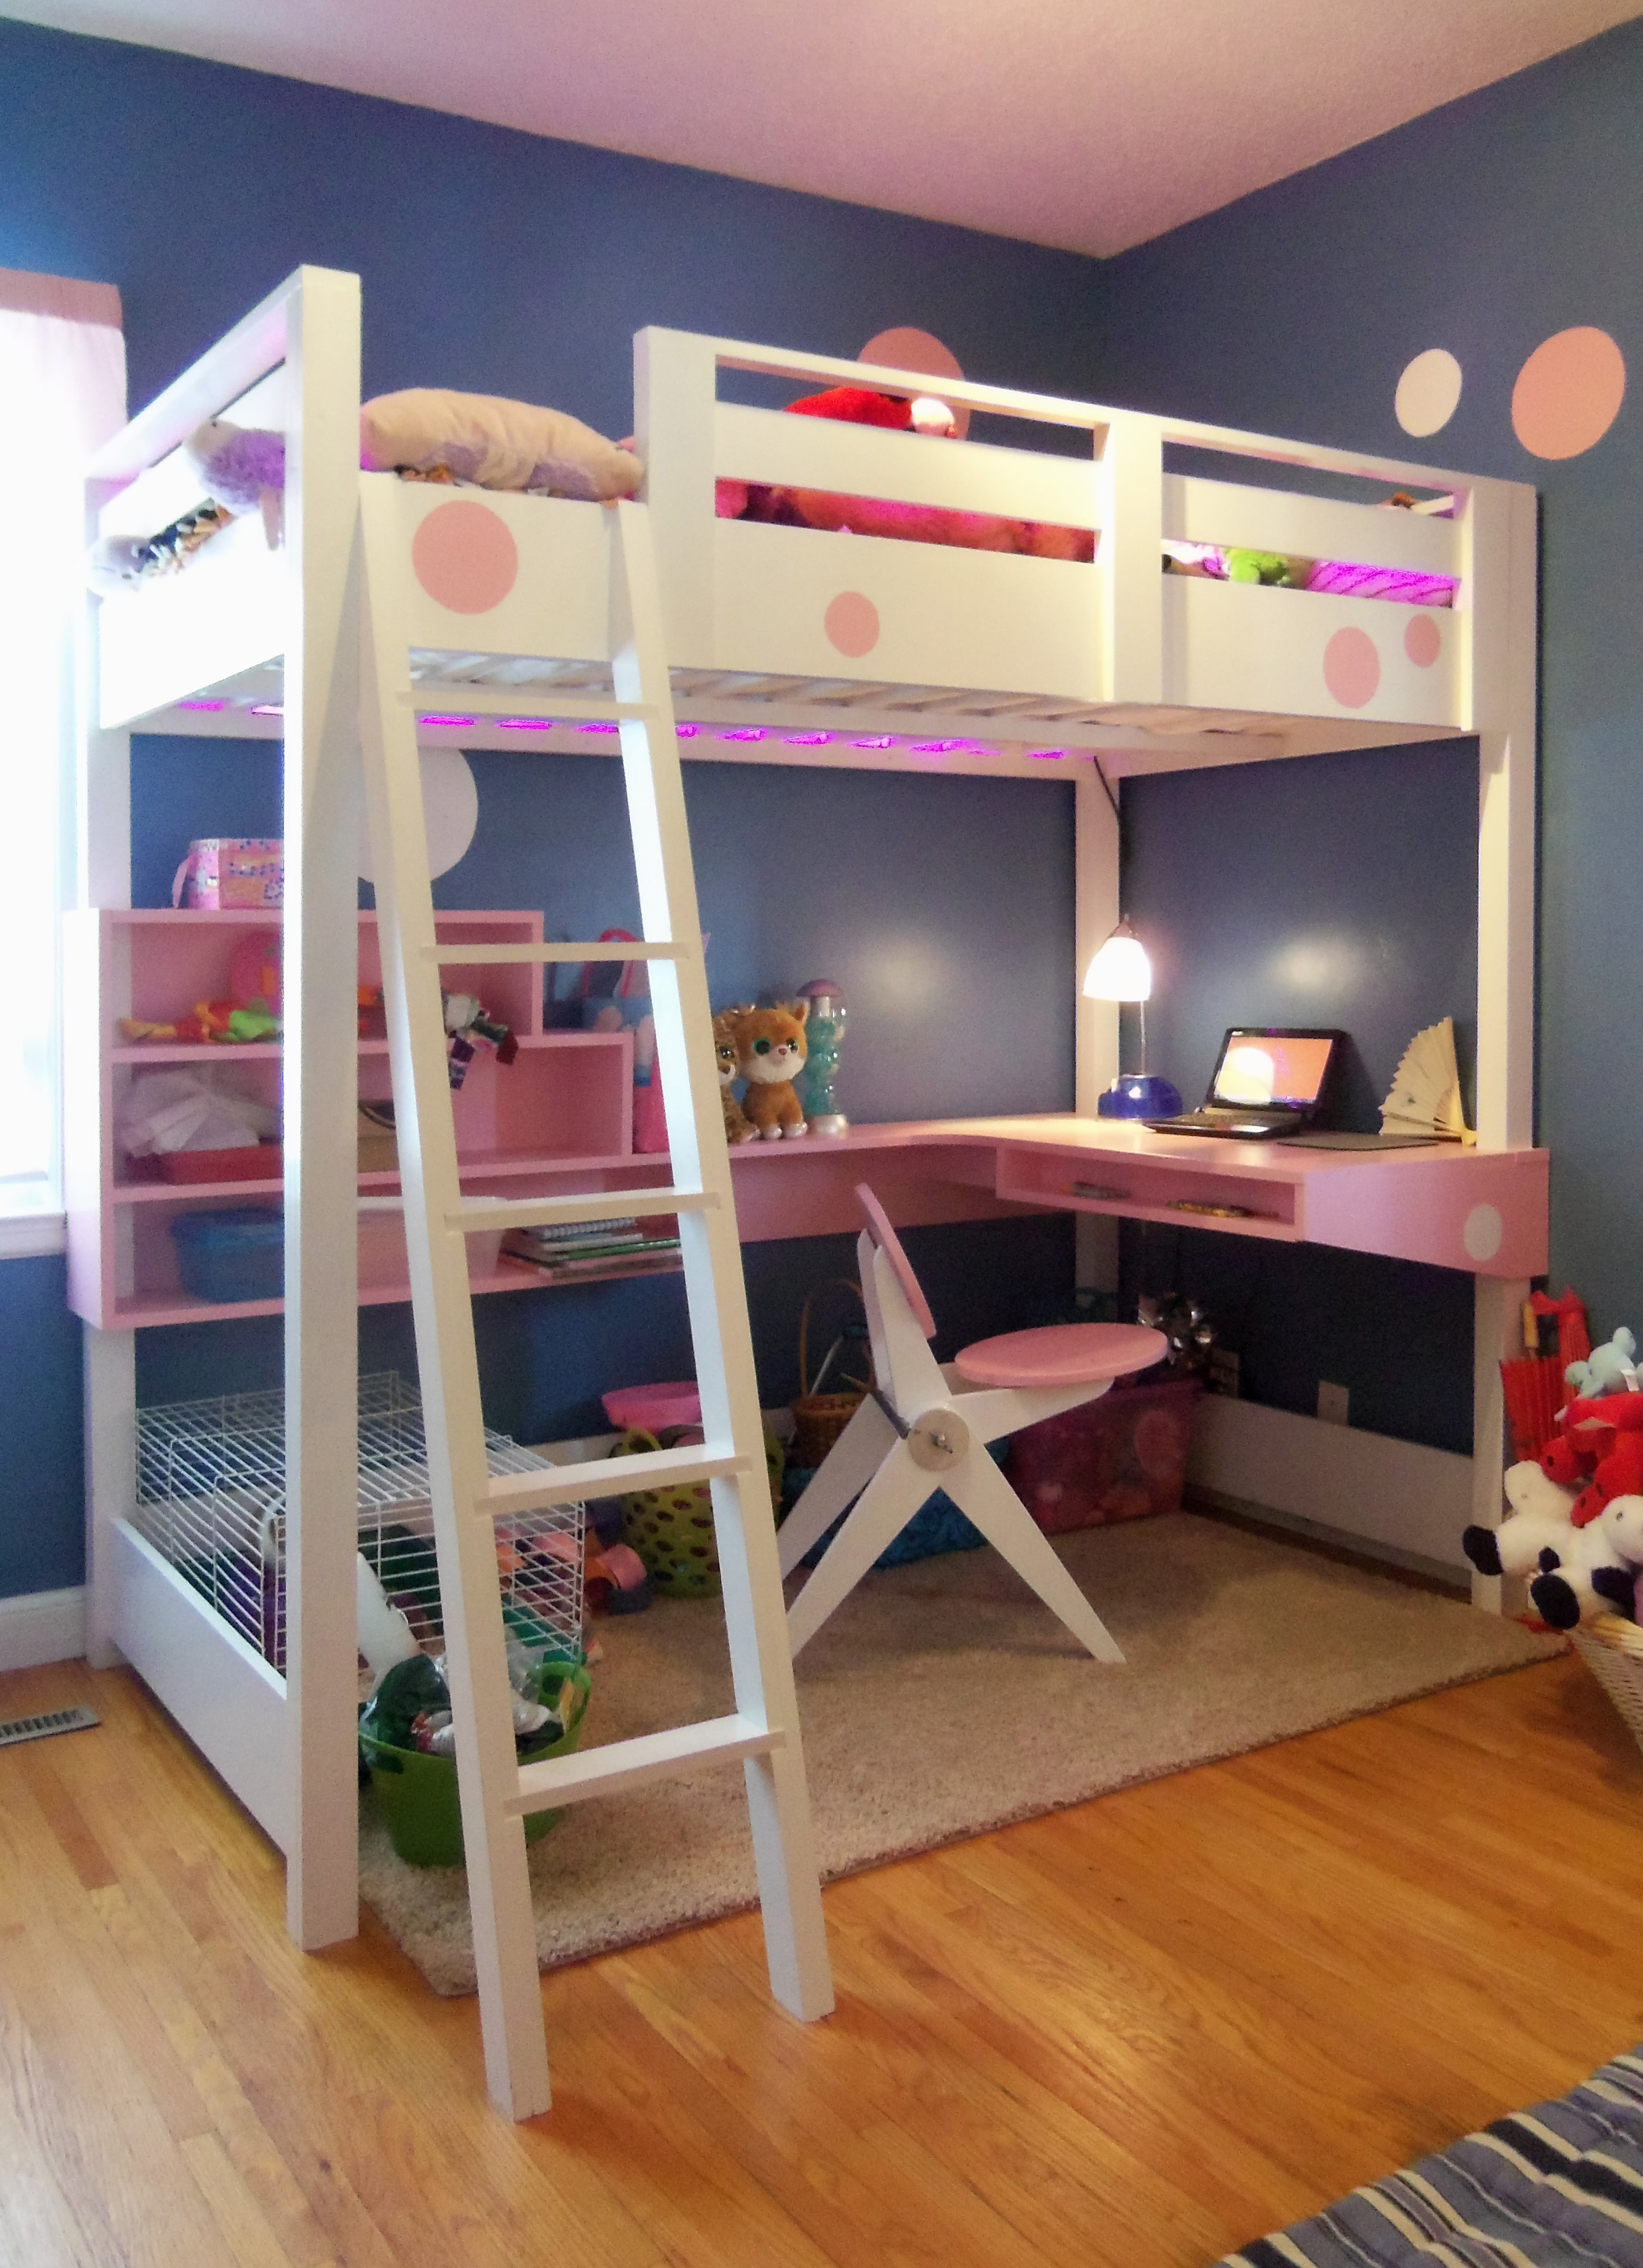 Swell Loft Bed With Desk Ana White Home Interior And Landscaping Ologienasavecom